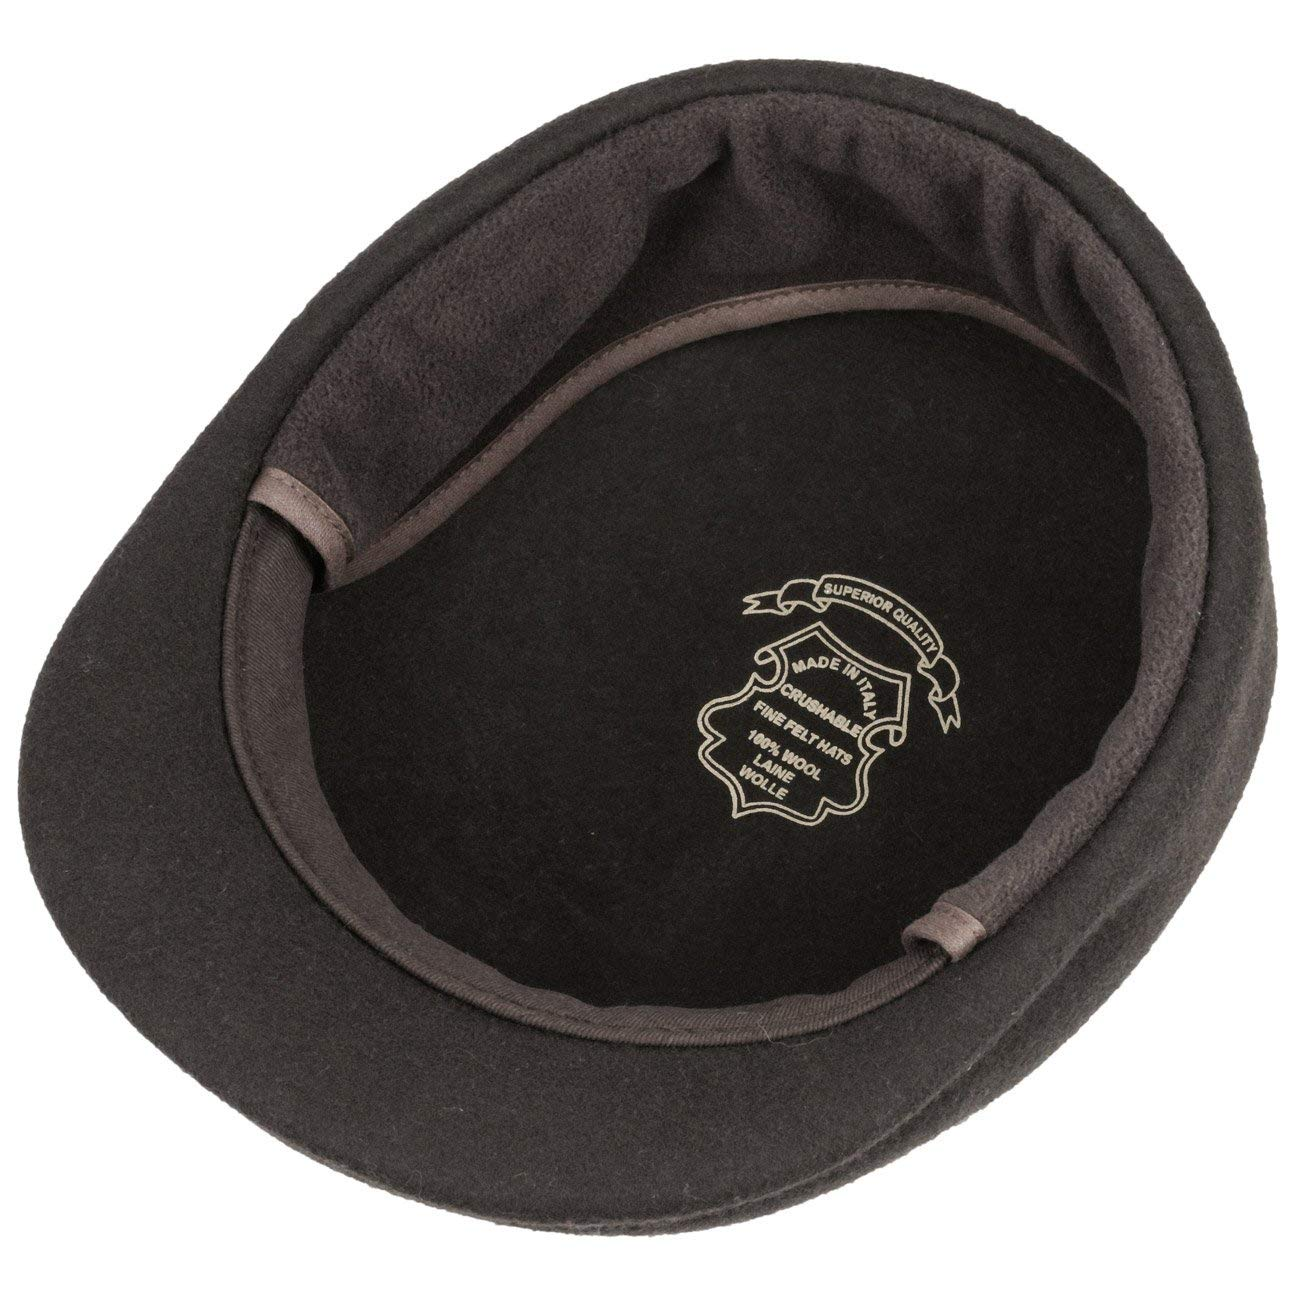 Made in Italy Lierys Outdoor Flat Cap with Ear Flaps Men